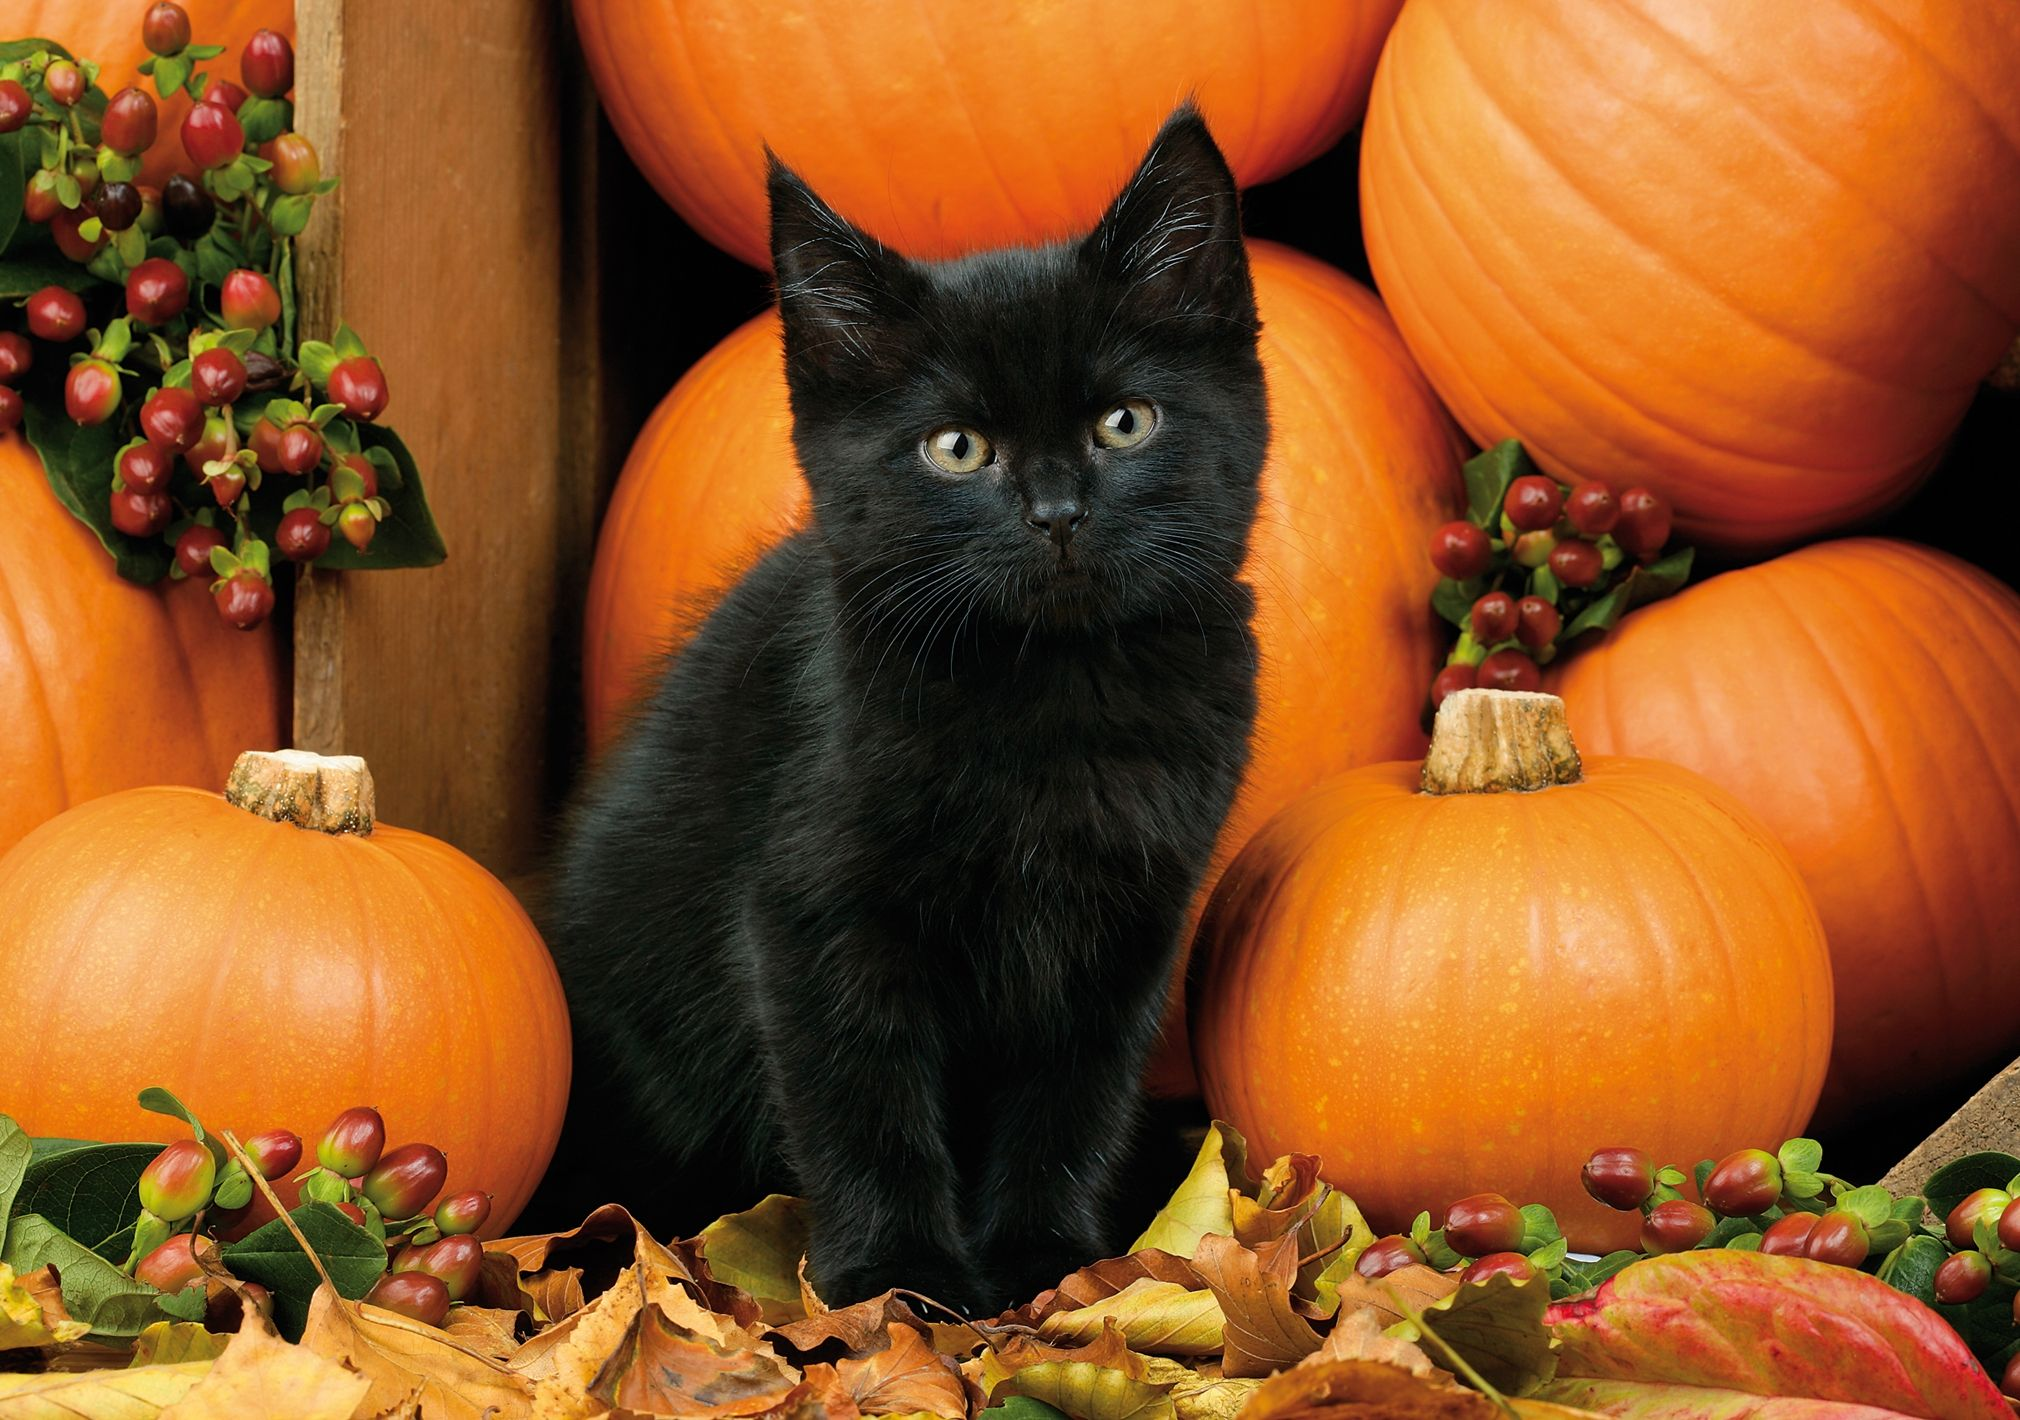 Black Cat Halloween Wallpaper Autumn Kitten Berries